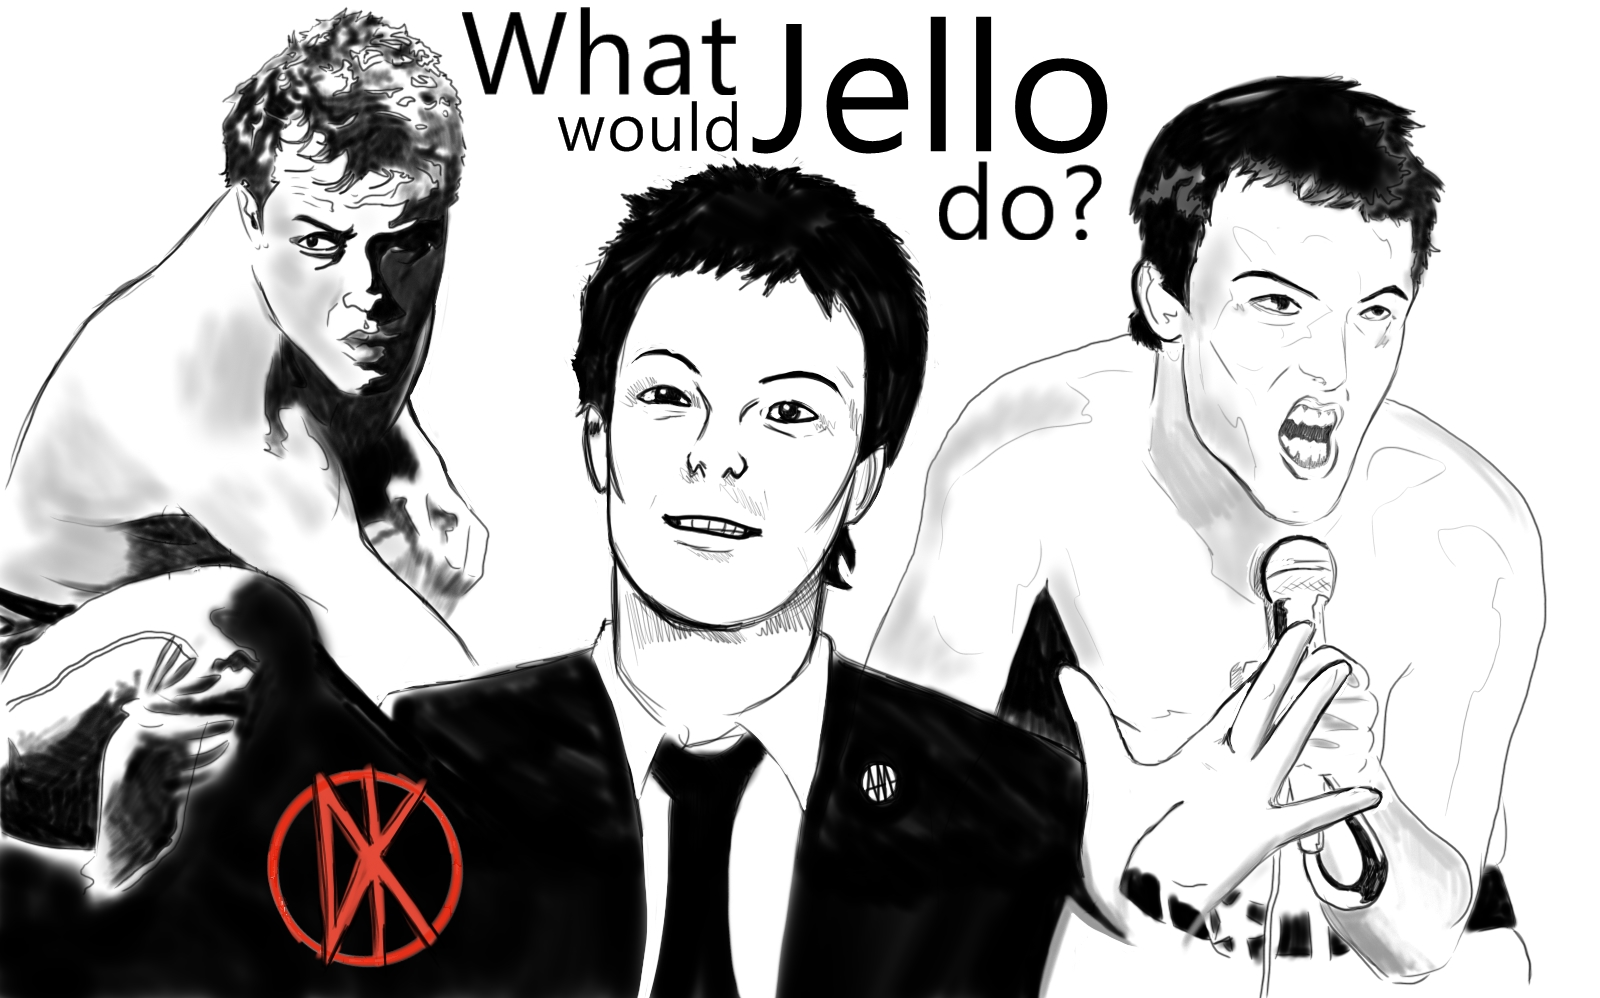 What would Jello do?